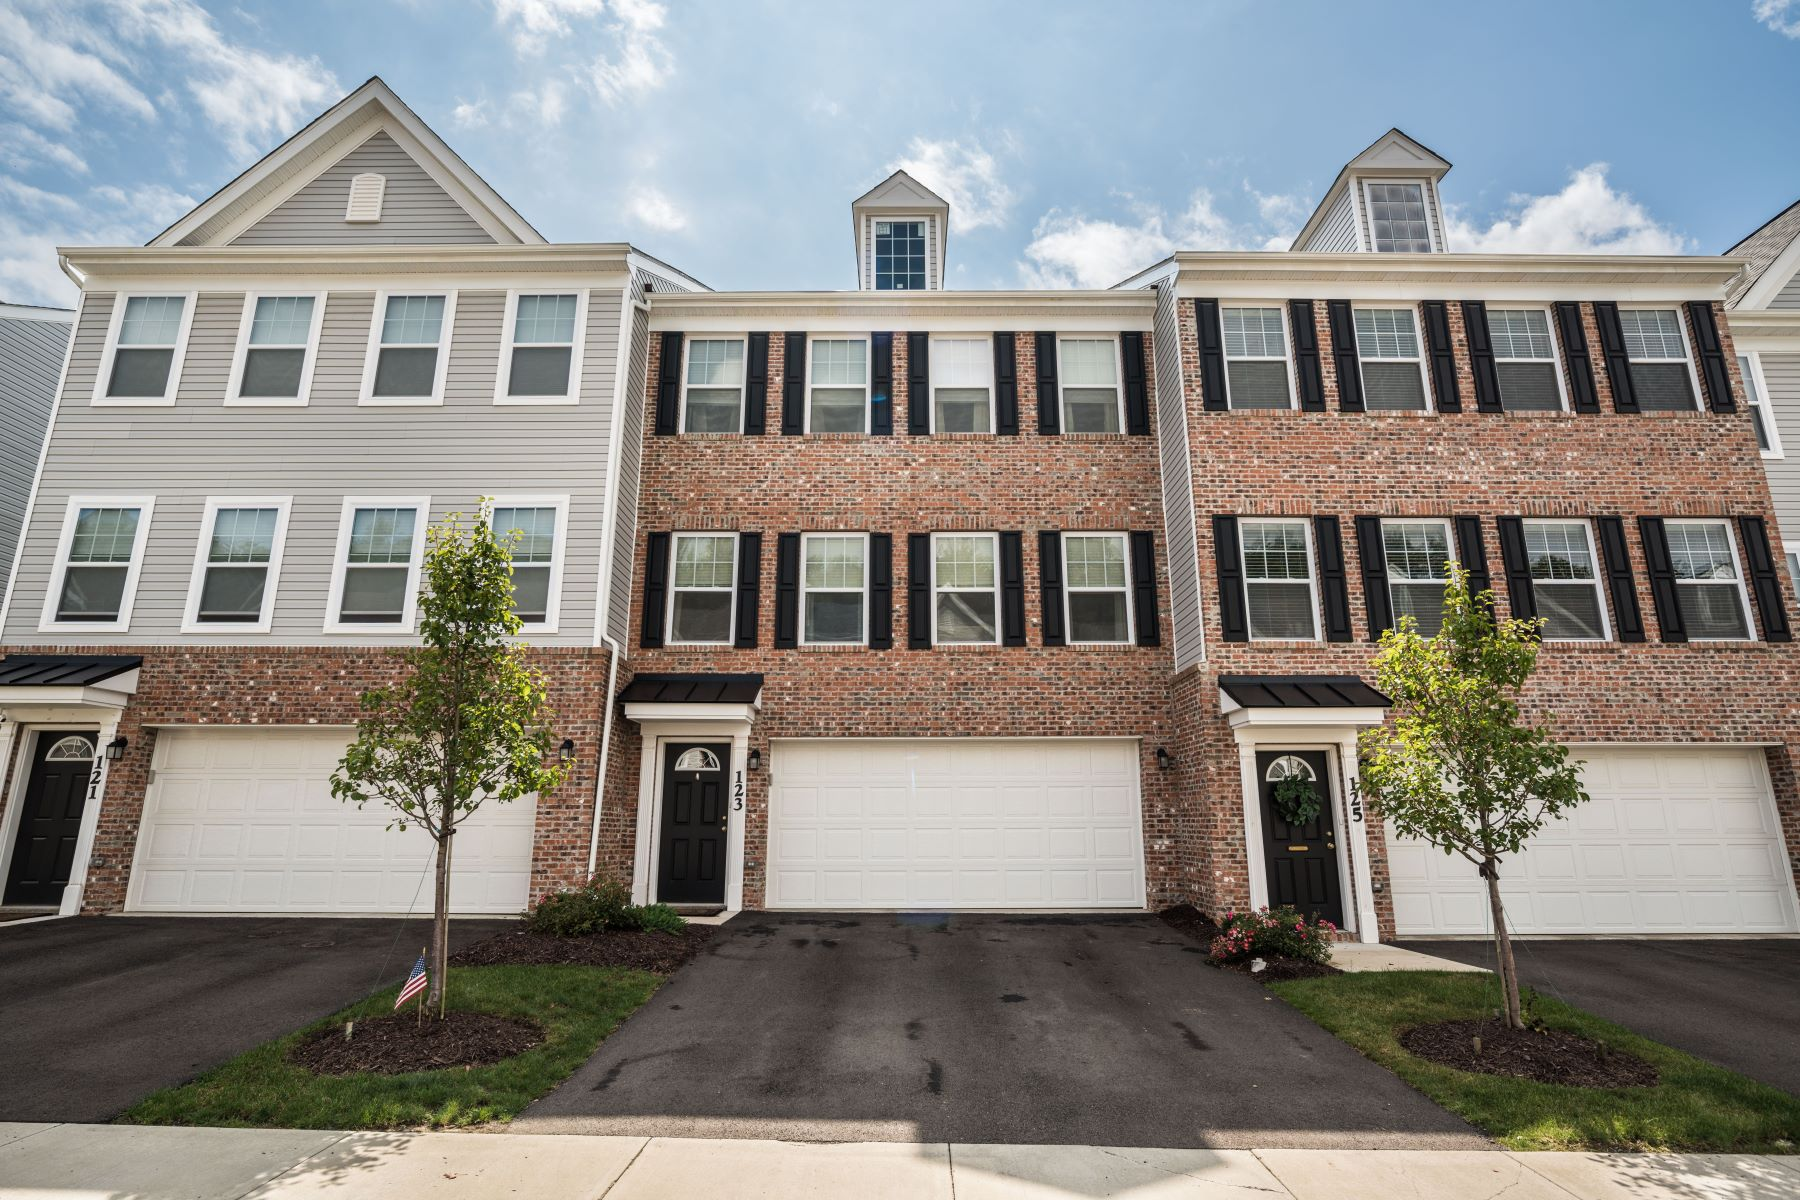 townhouses for Sale at Elegant Townhome in The Park at Marshall 123 Watson Drive Warrendale, Pennsylvania 15086 United States